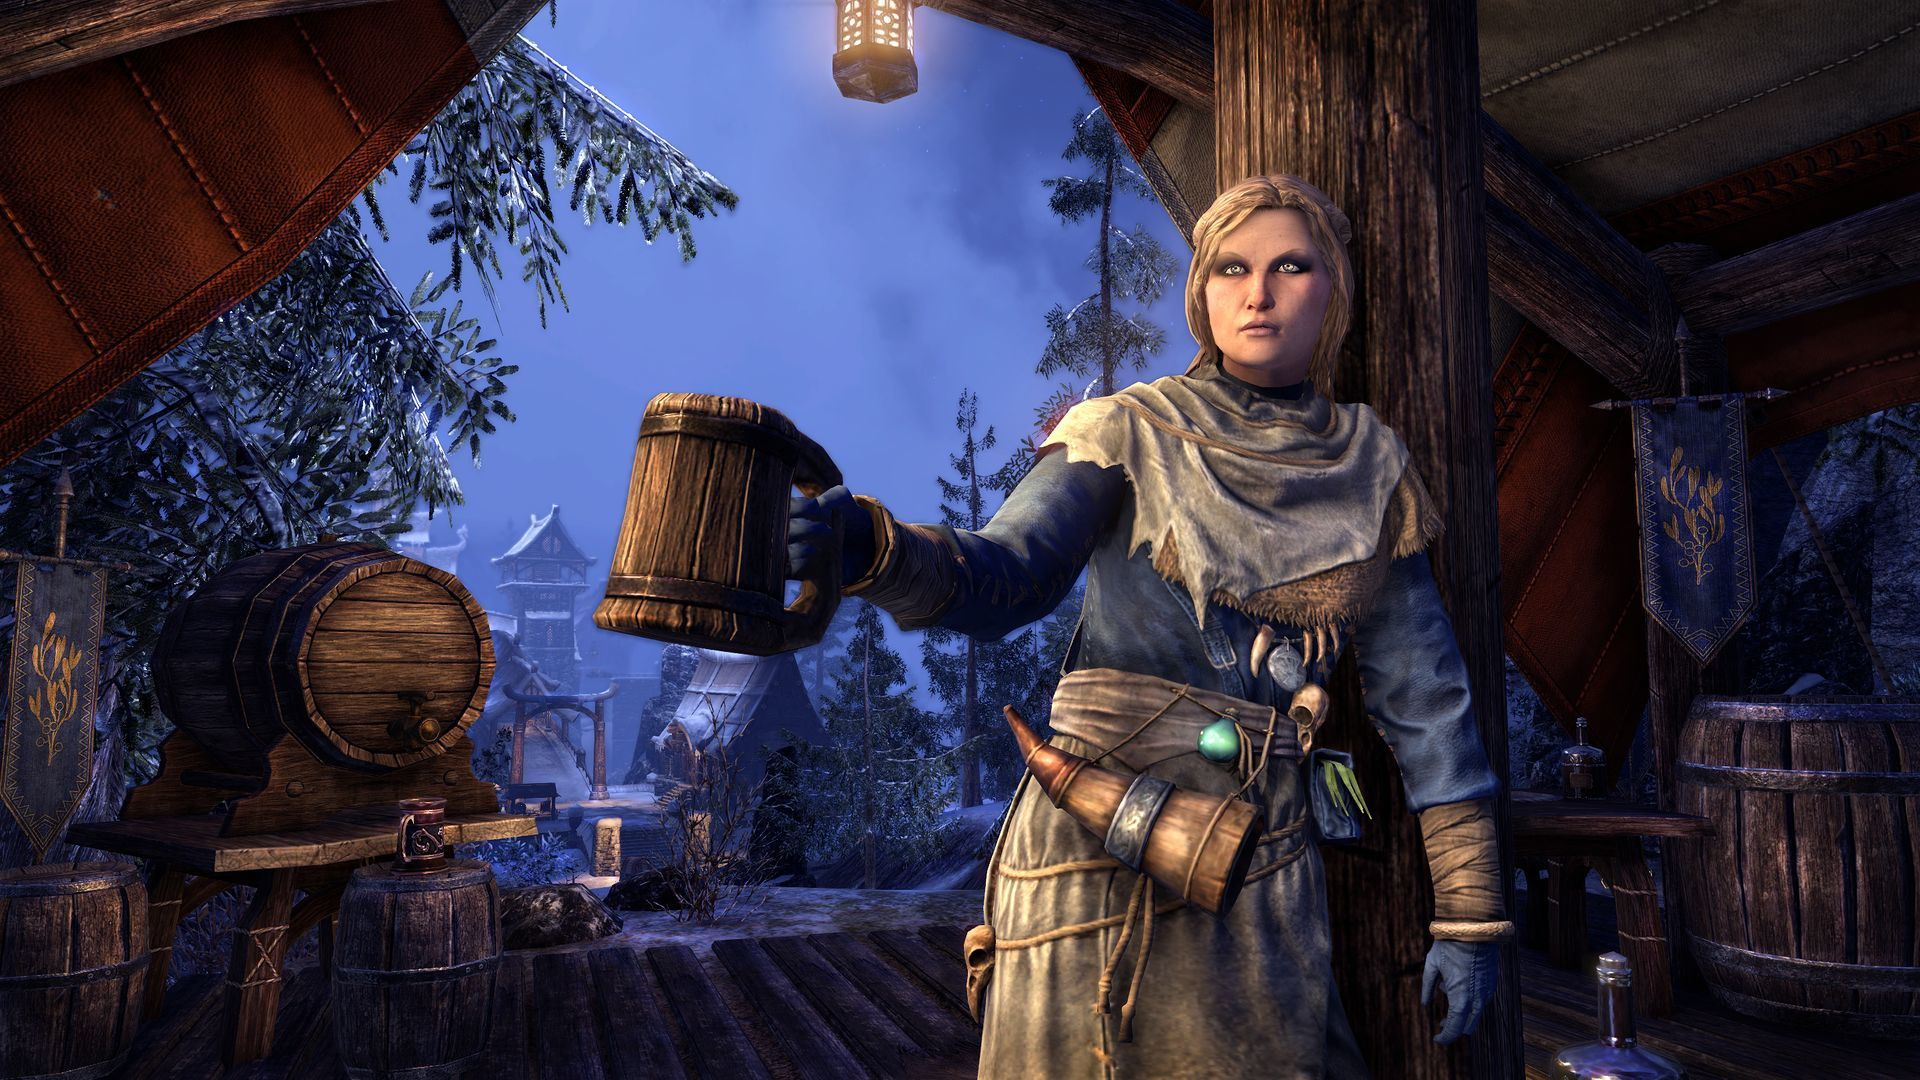 Jan 18 Announcing The Elder Scrolls Online: Elsweyr the